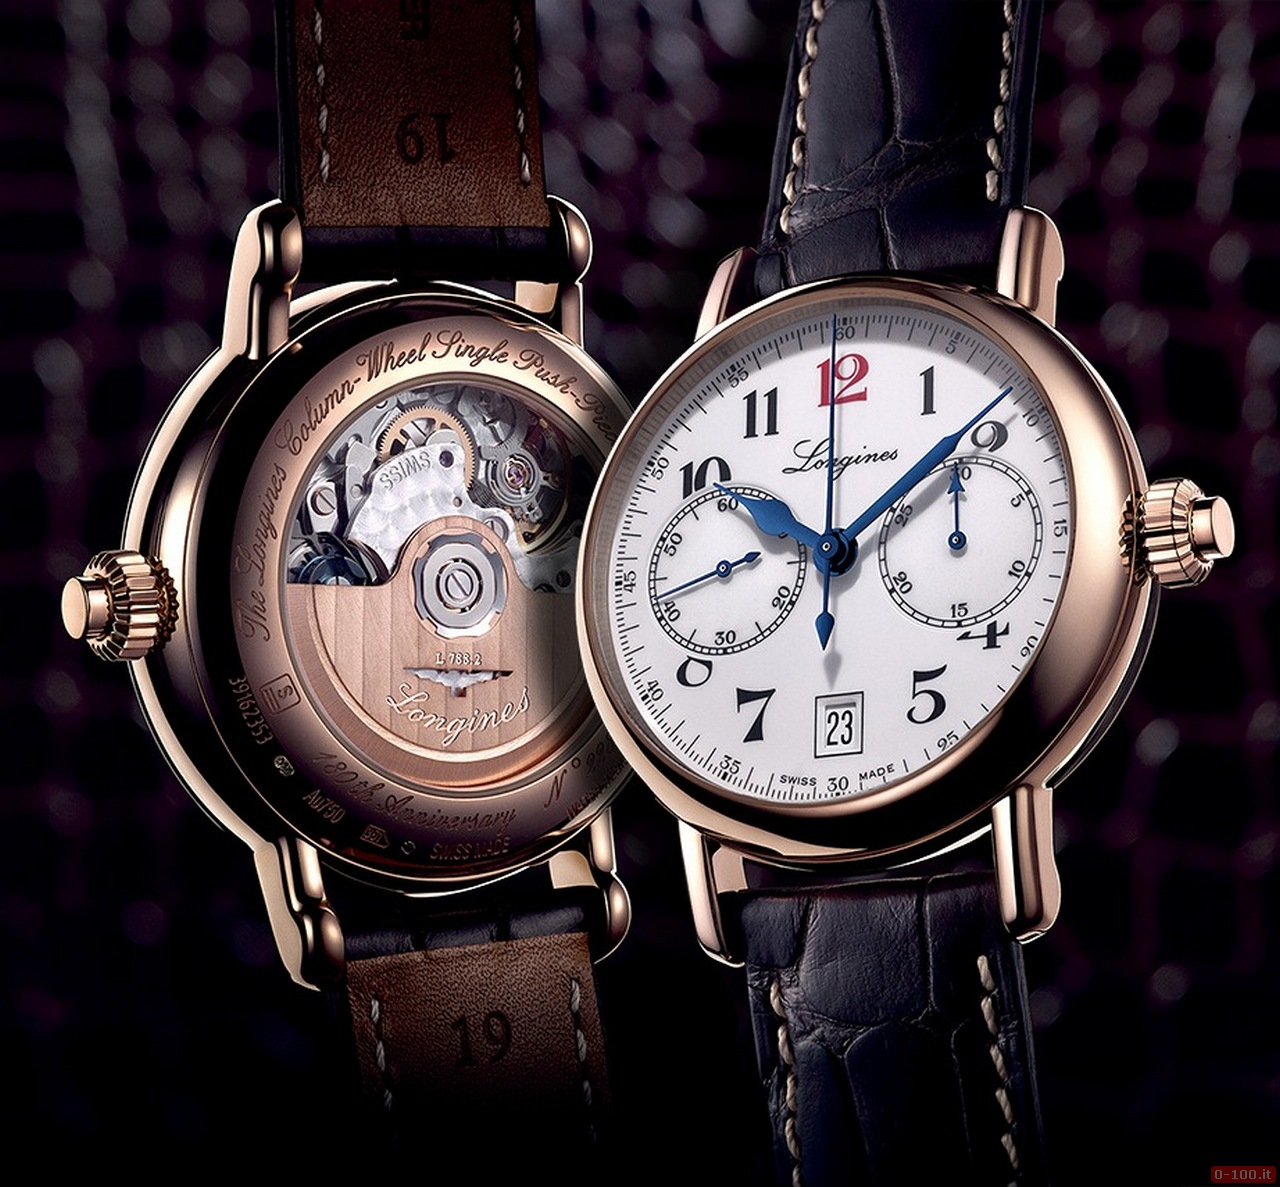 anteprima-baselworld-2014-longines-column-wheel-single-push-piece-chronograph_0-1001